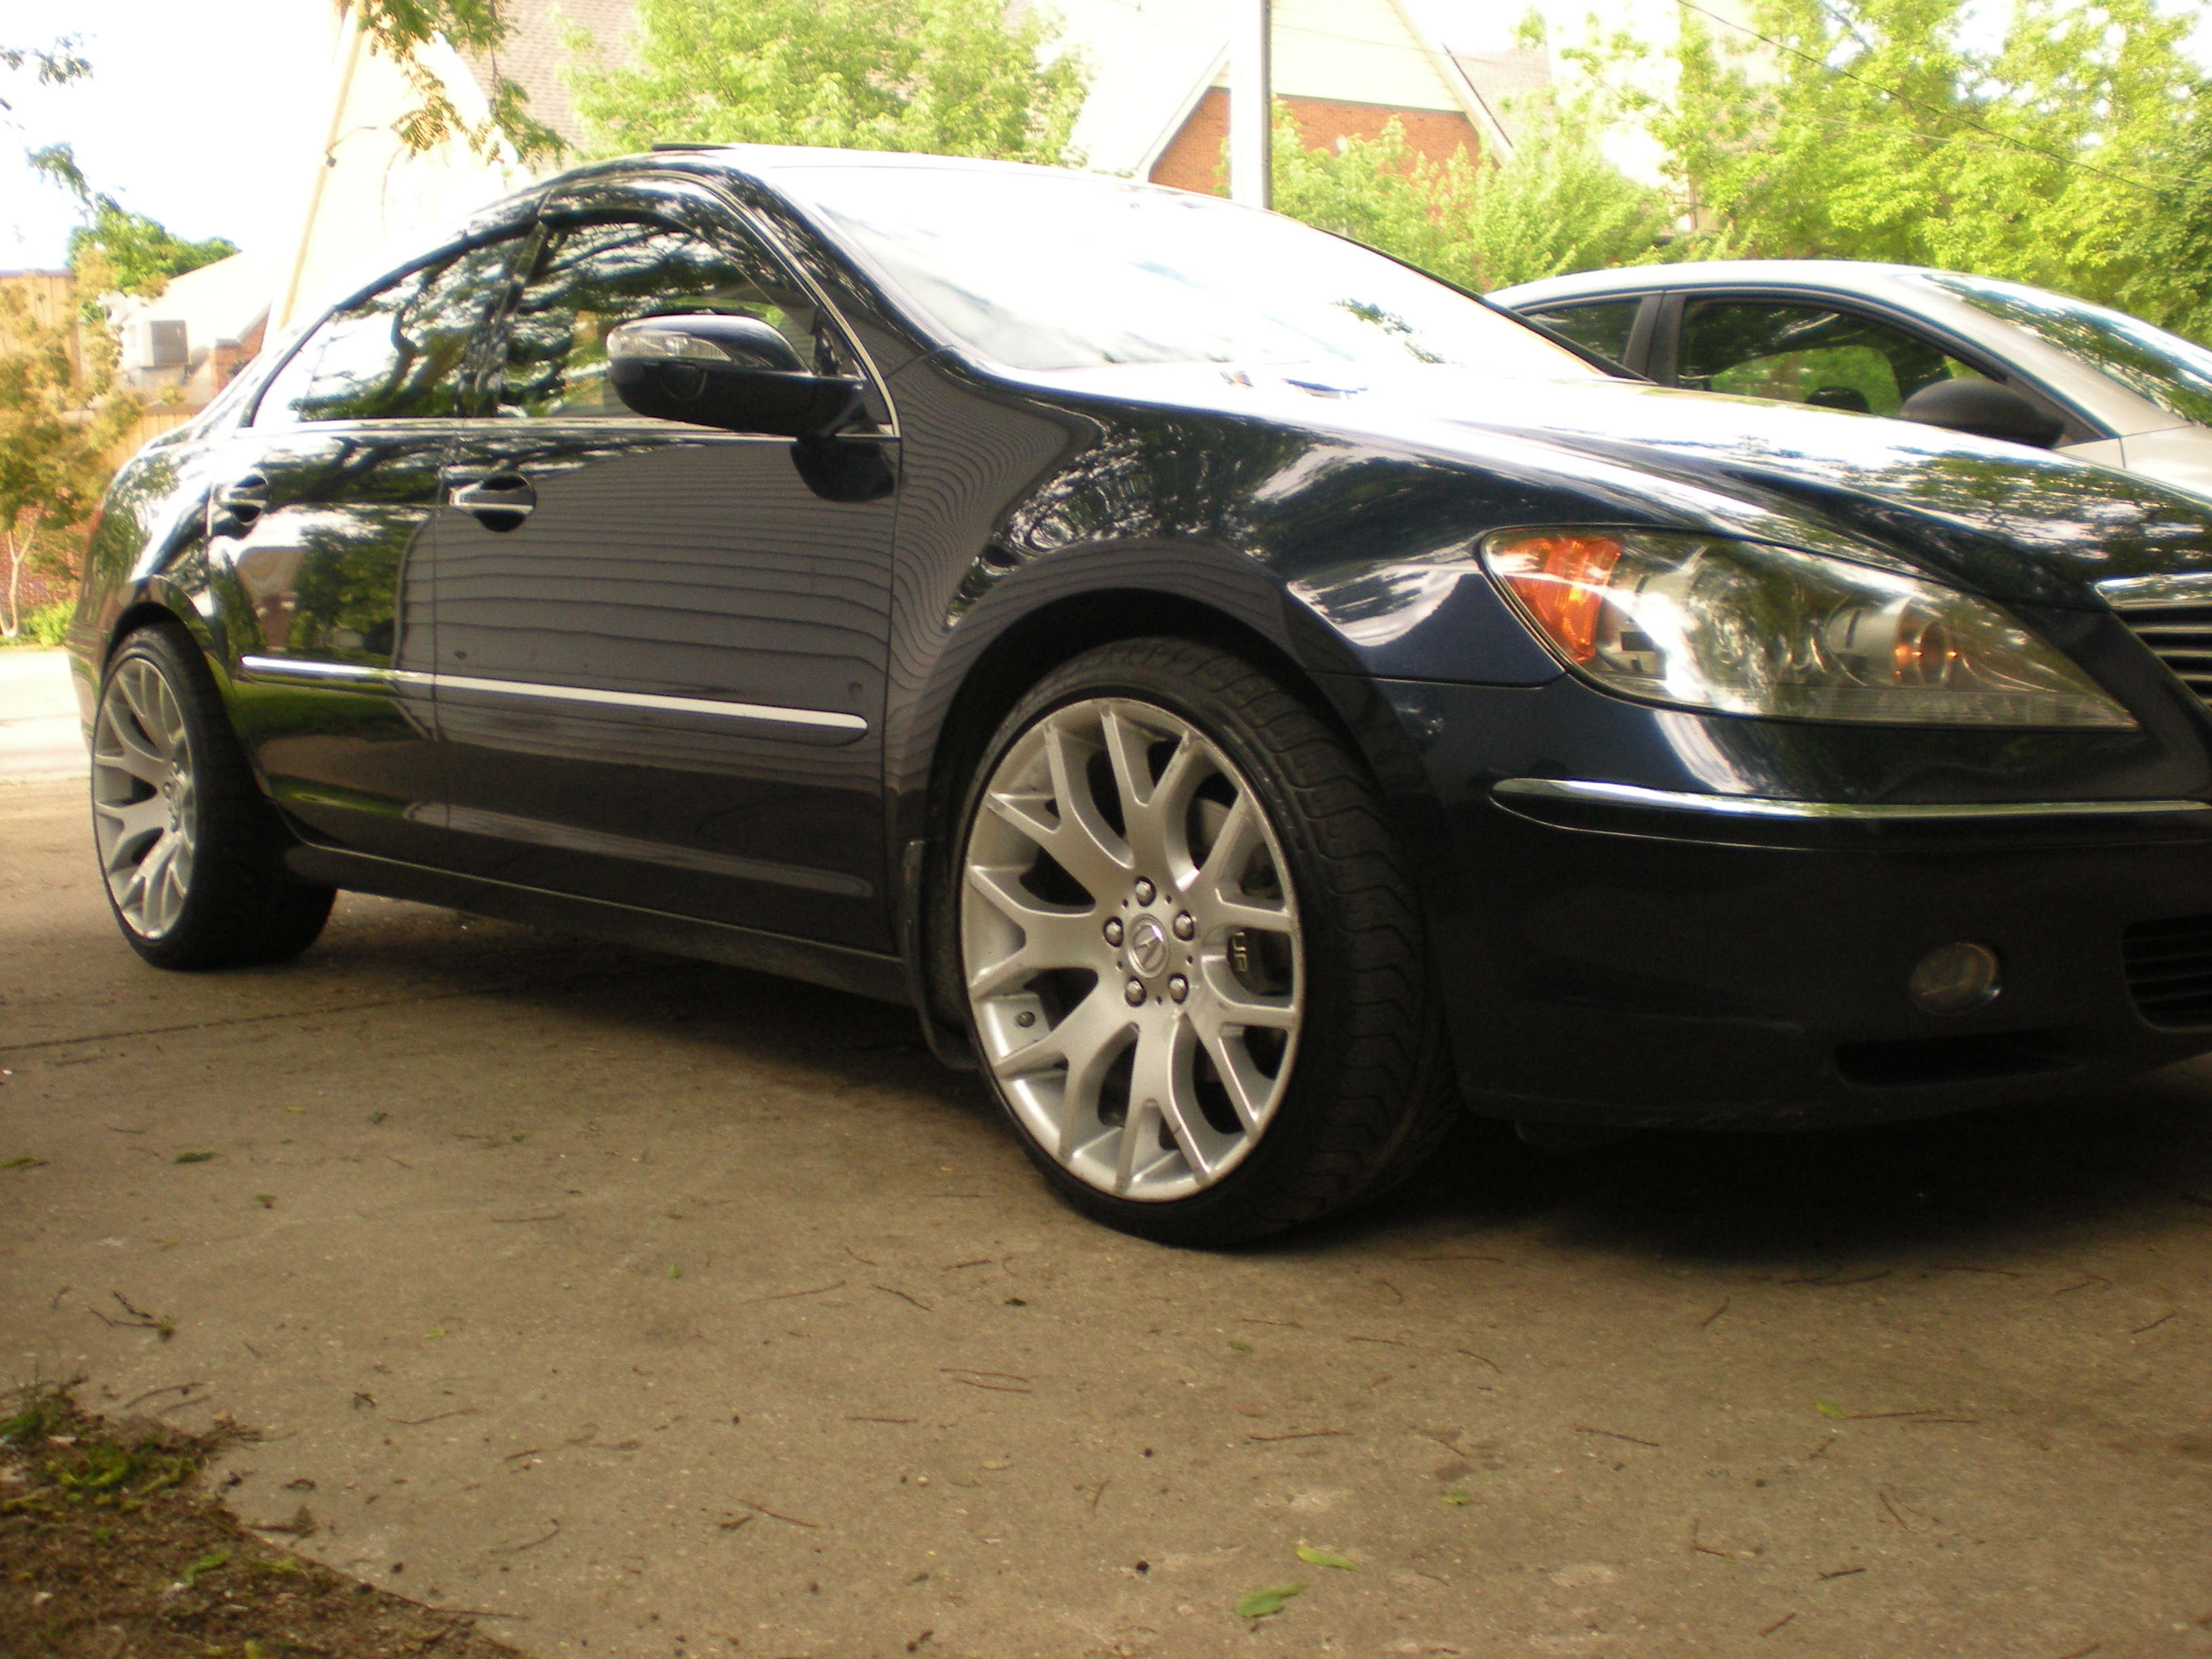 Lawrence Acura RL Specs Photos Modification Info At CarDomain - Acura rl wheels